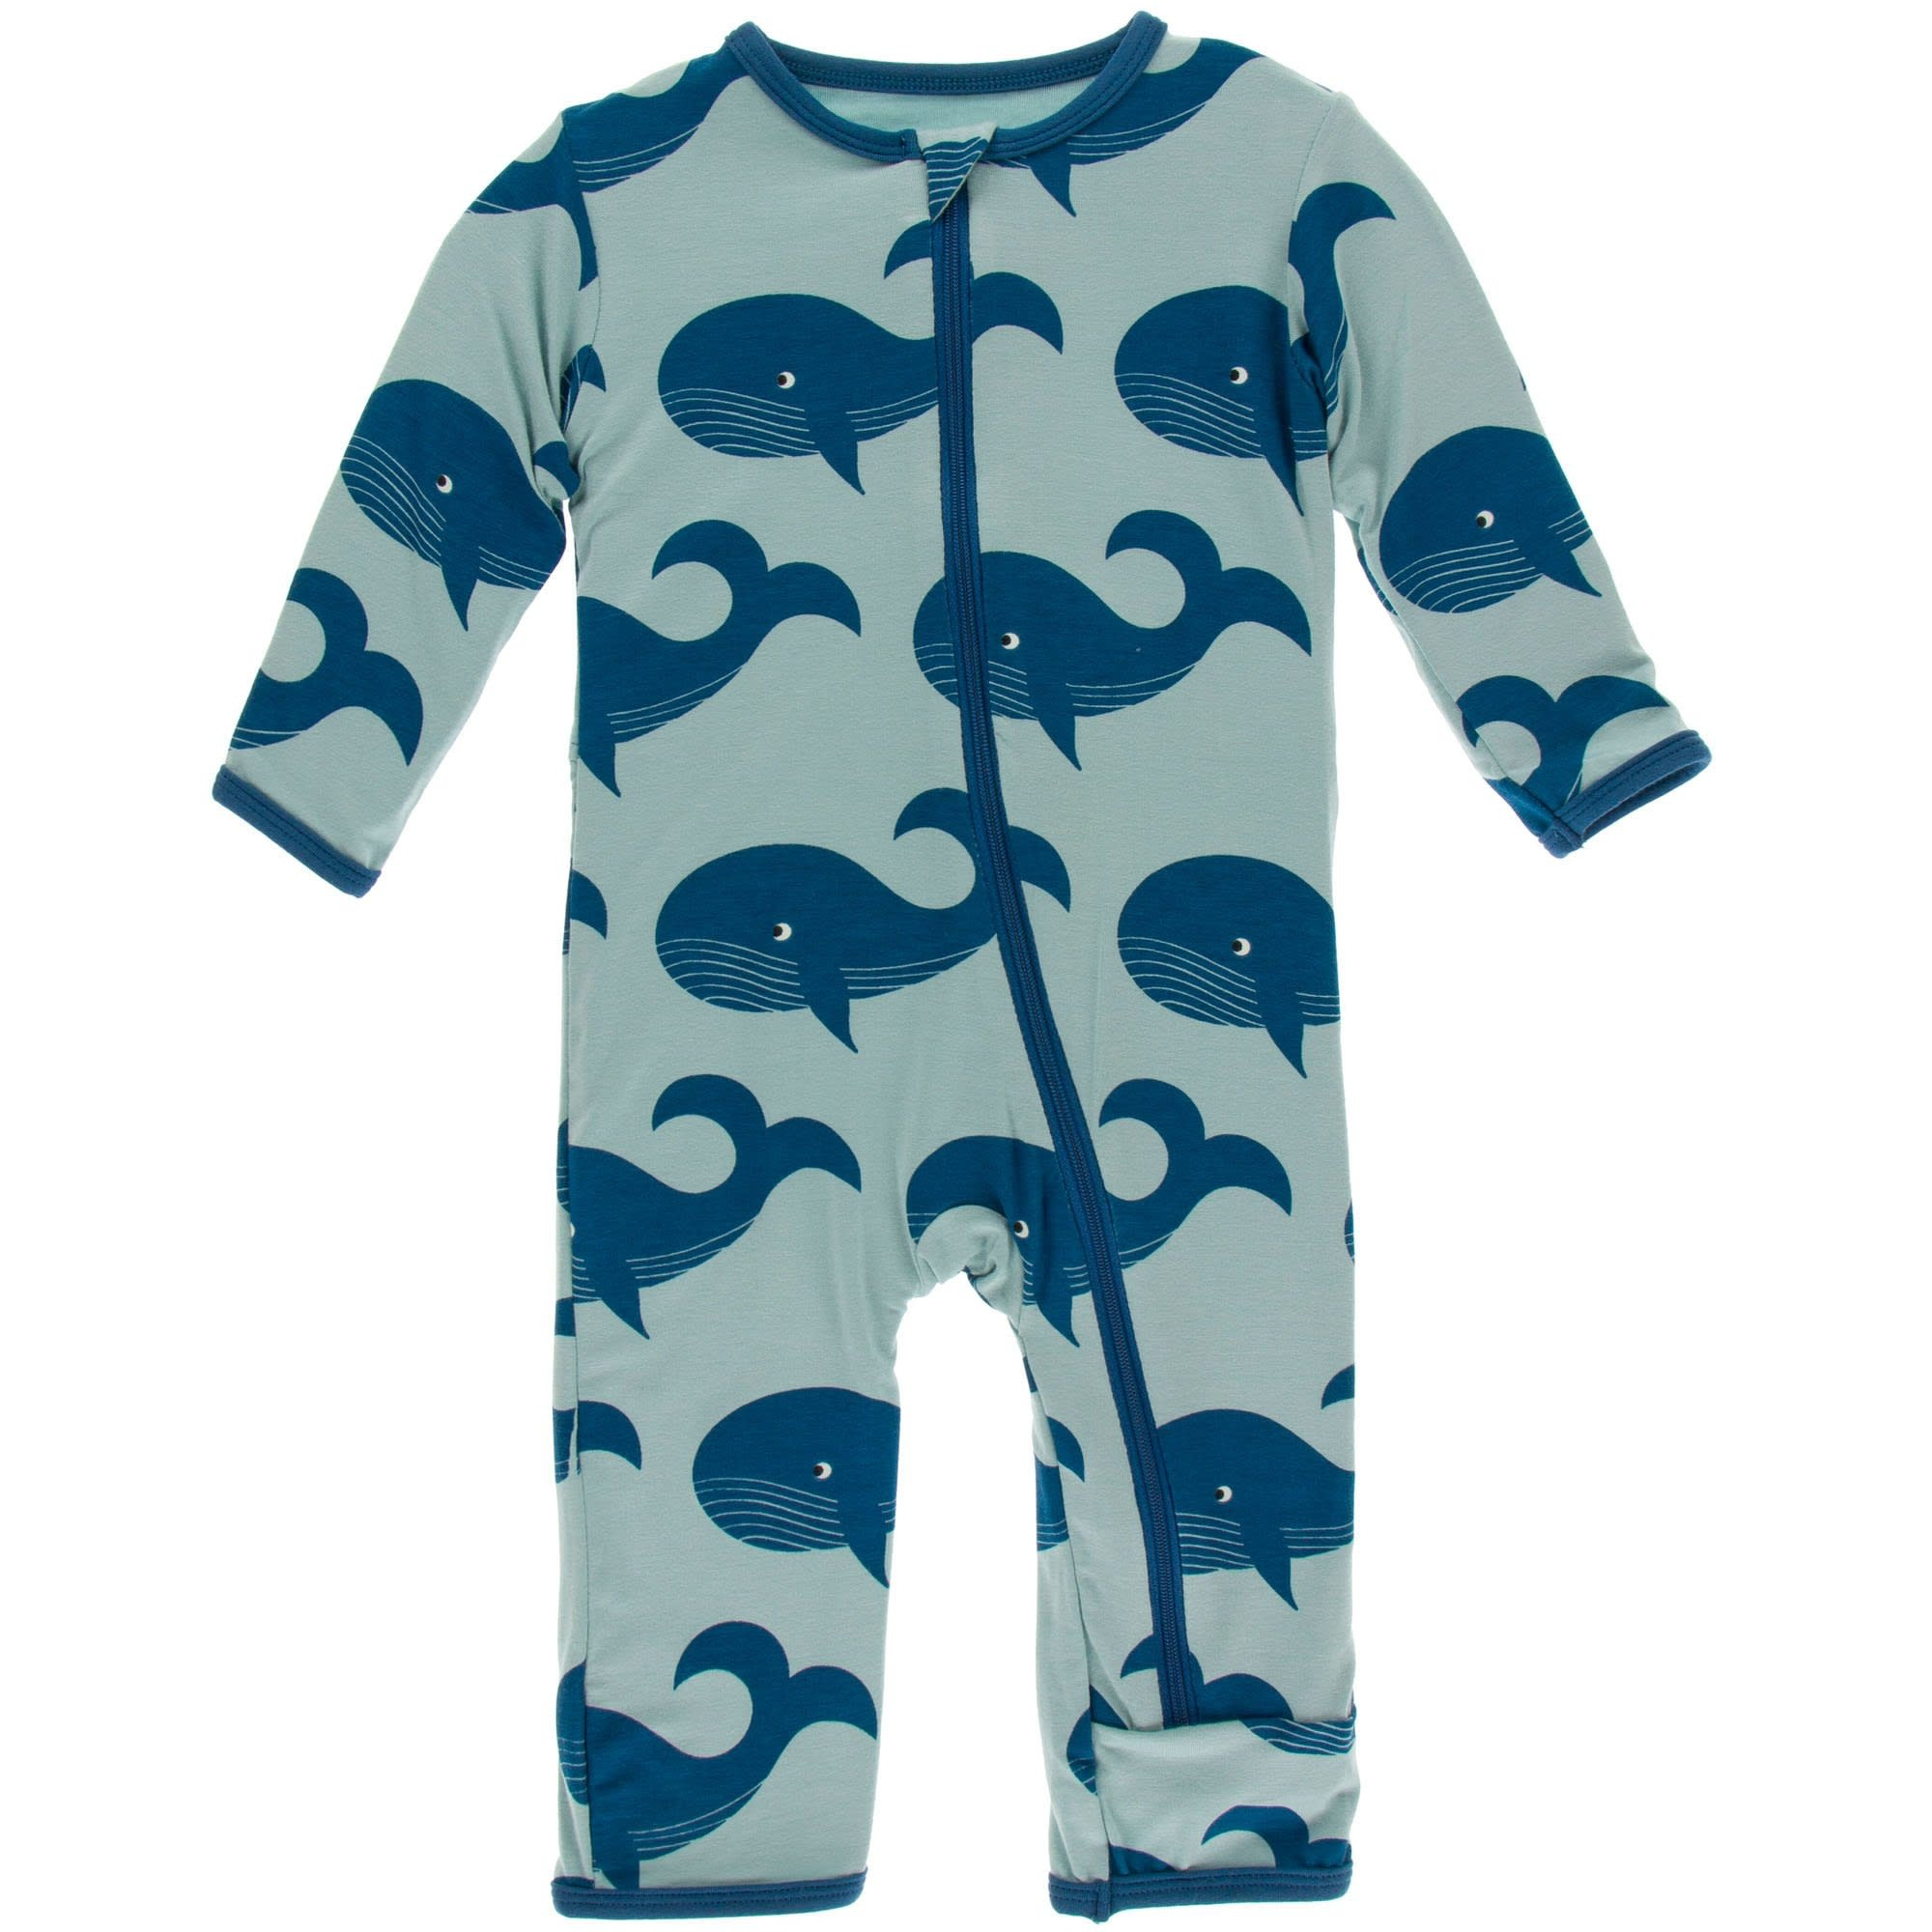 Kickee Pants Coverall with Snaps Jade Whales